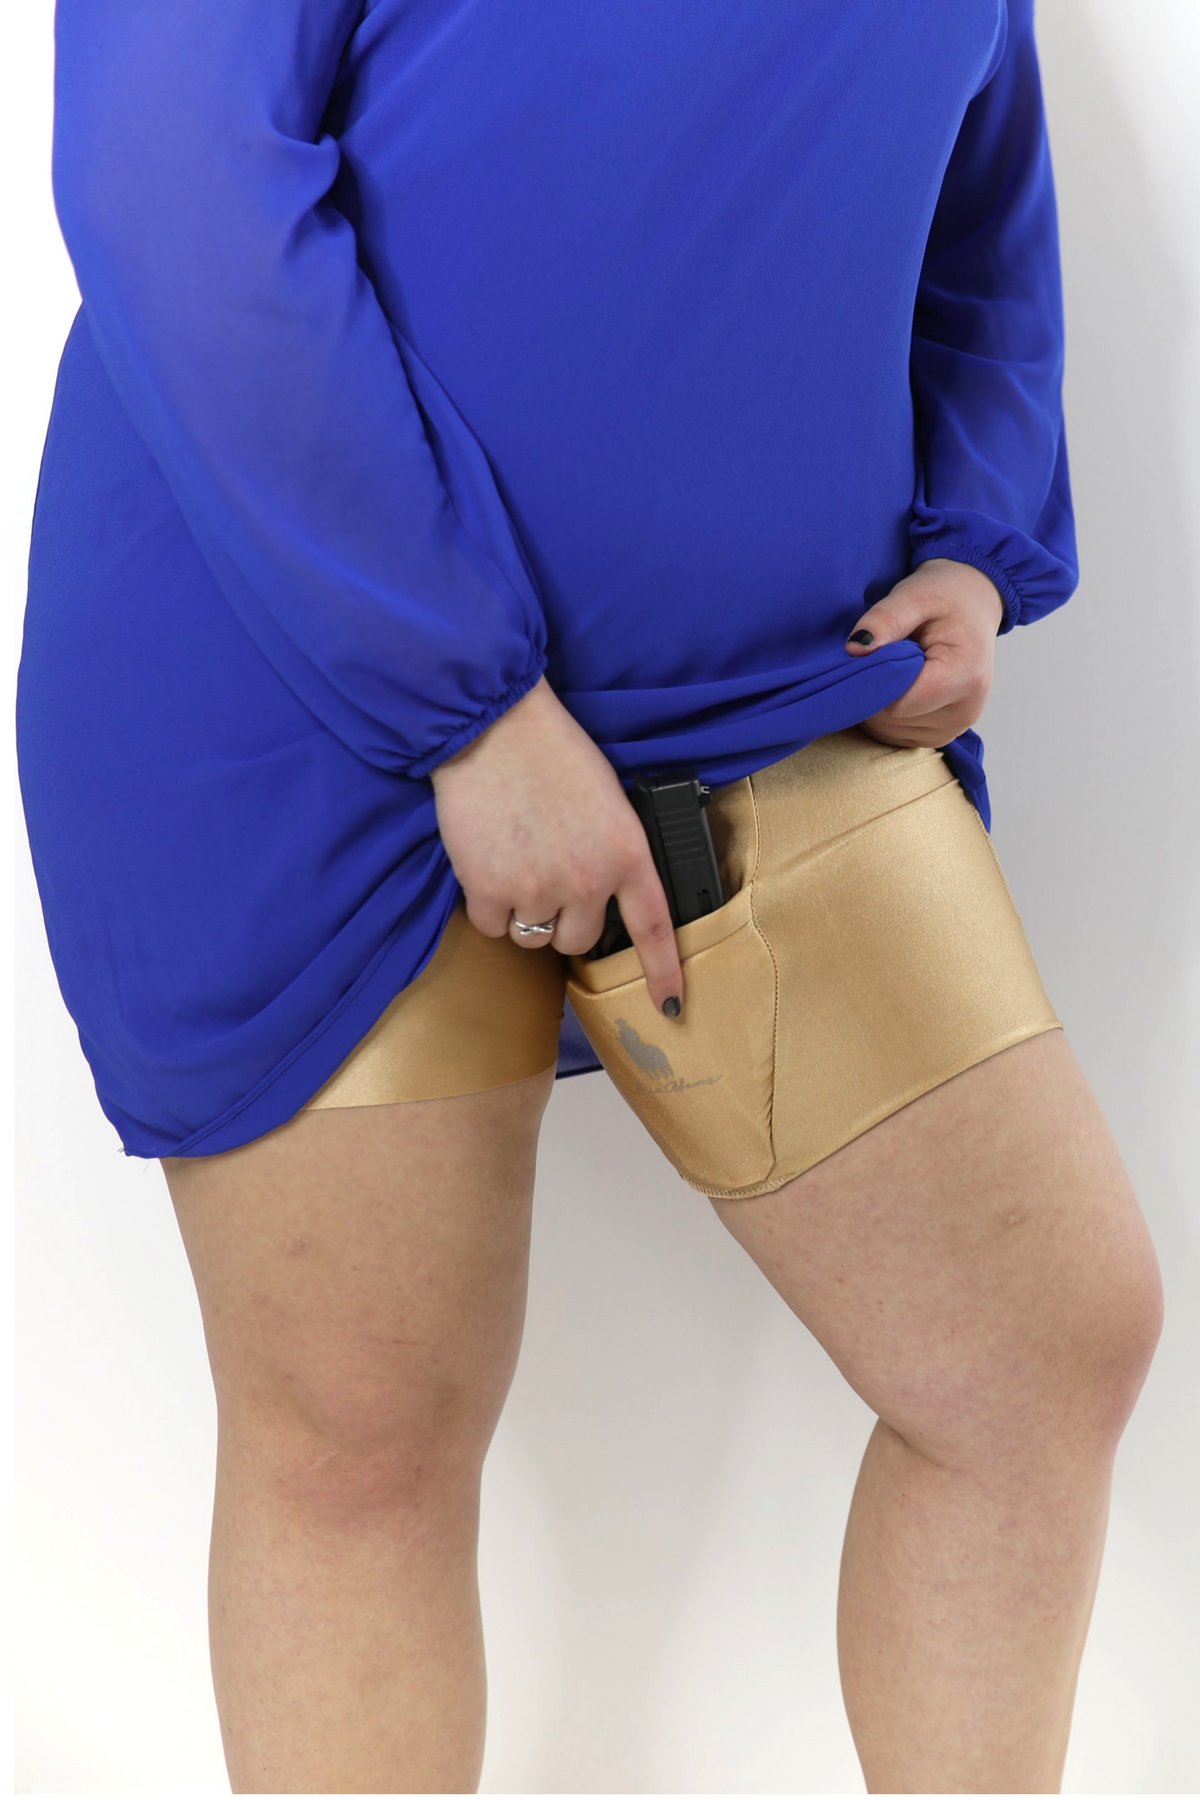 Nude Body Shaping Thigh Holster Shorts | Weapons, Holsters